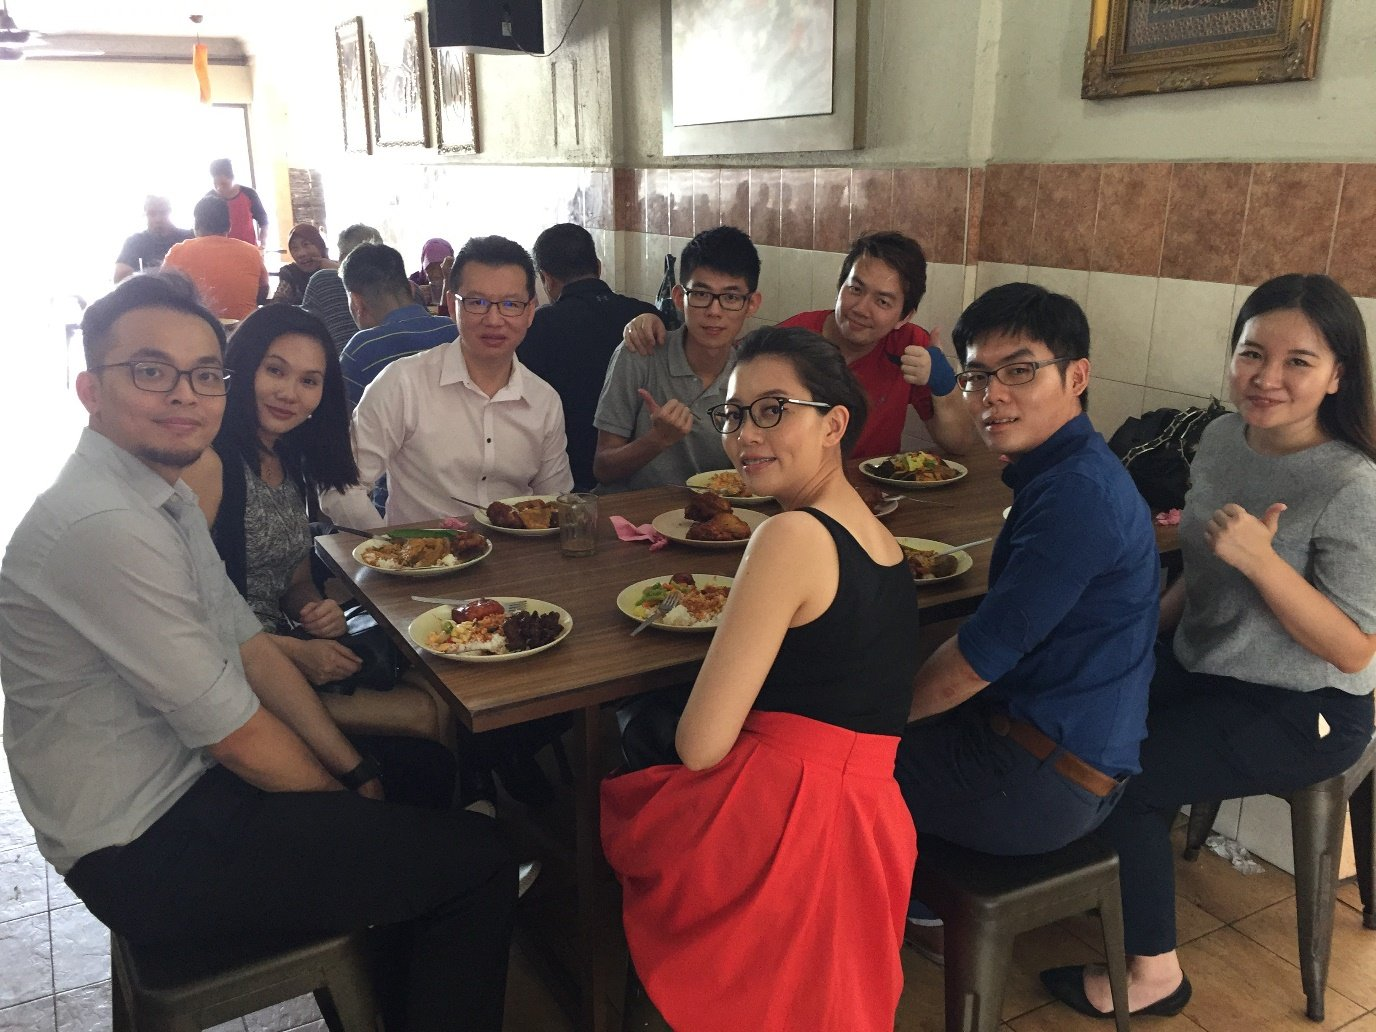 Israr Wong having lunch with the doctors of Puretouch Clinic at Cargas, having Nasi Kandar